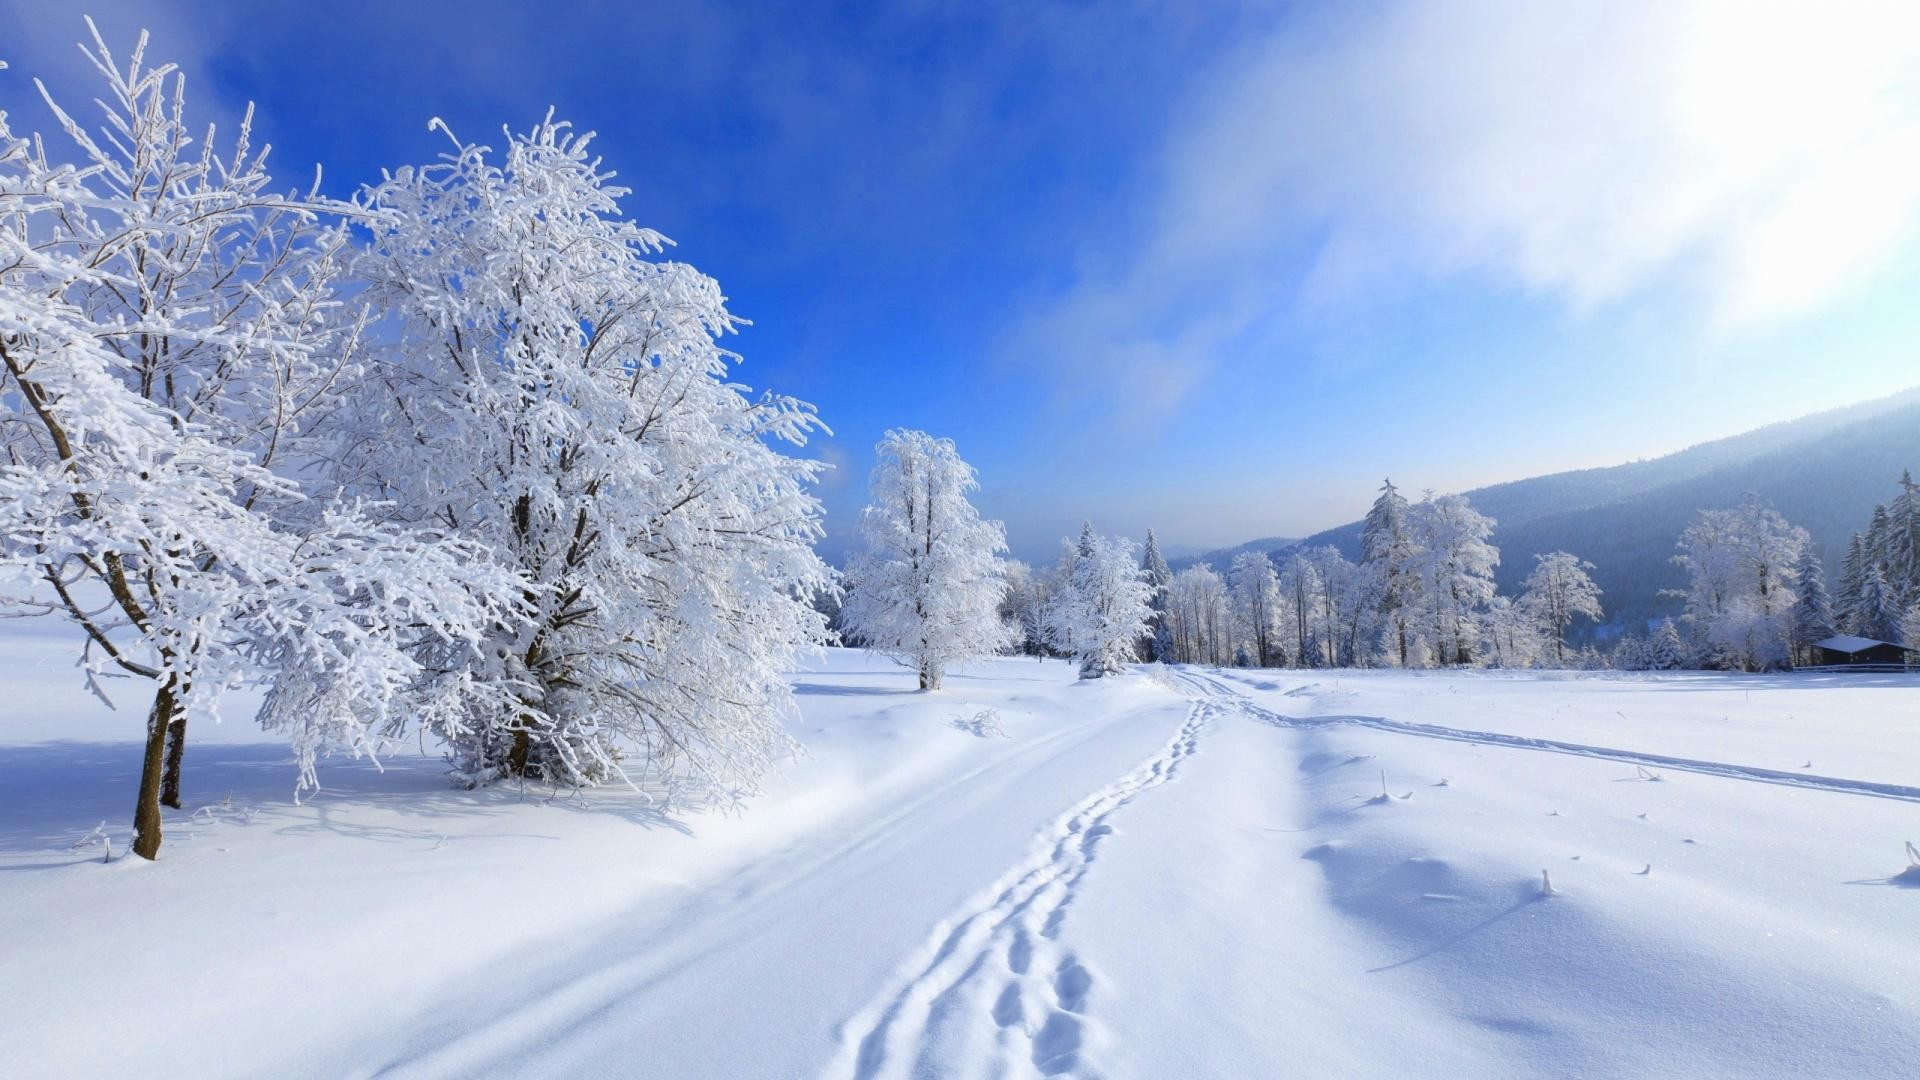 Winter Desktop Wallpaper ·① Download Free Cool High